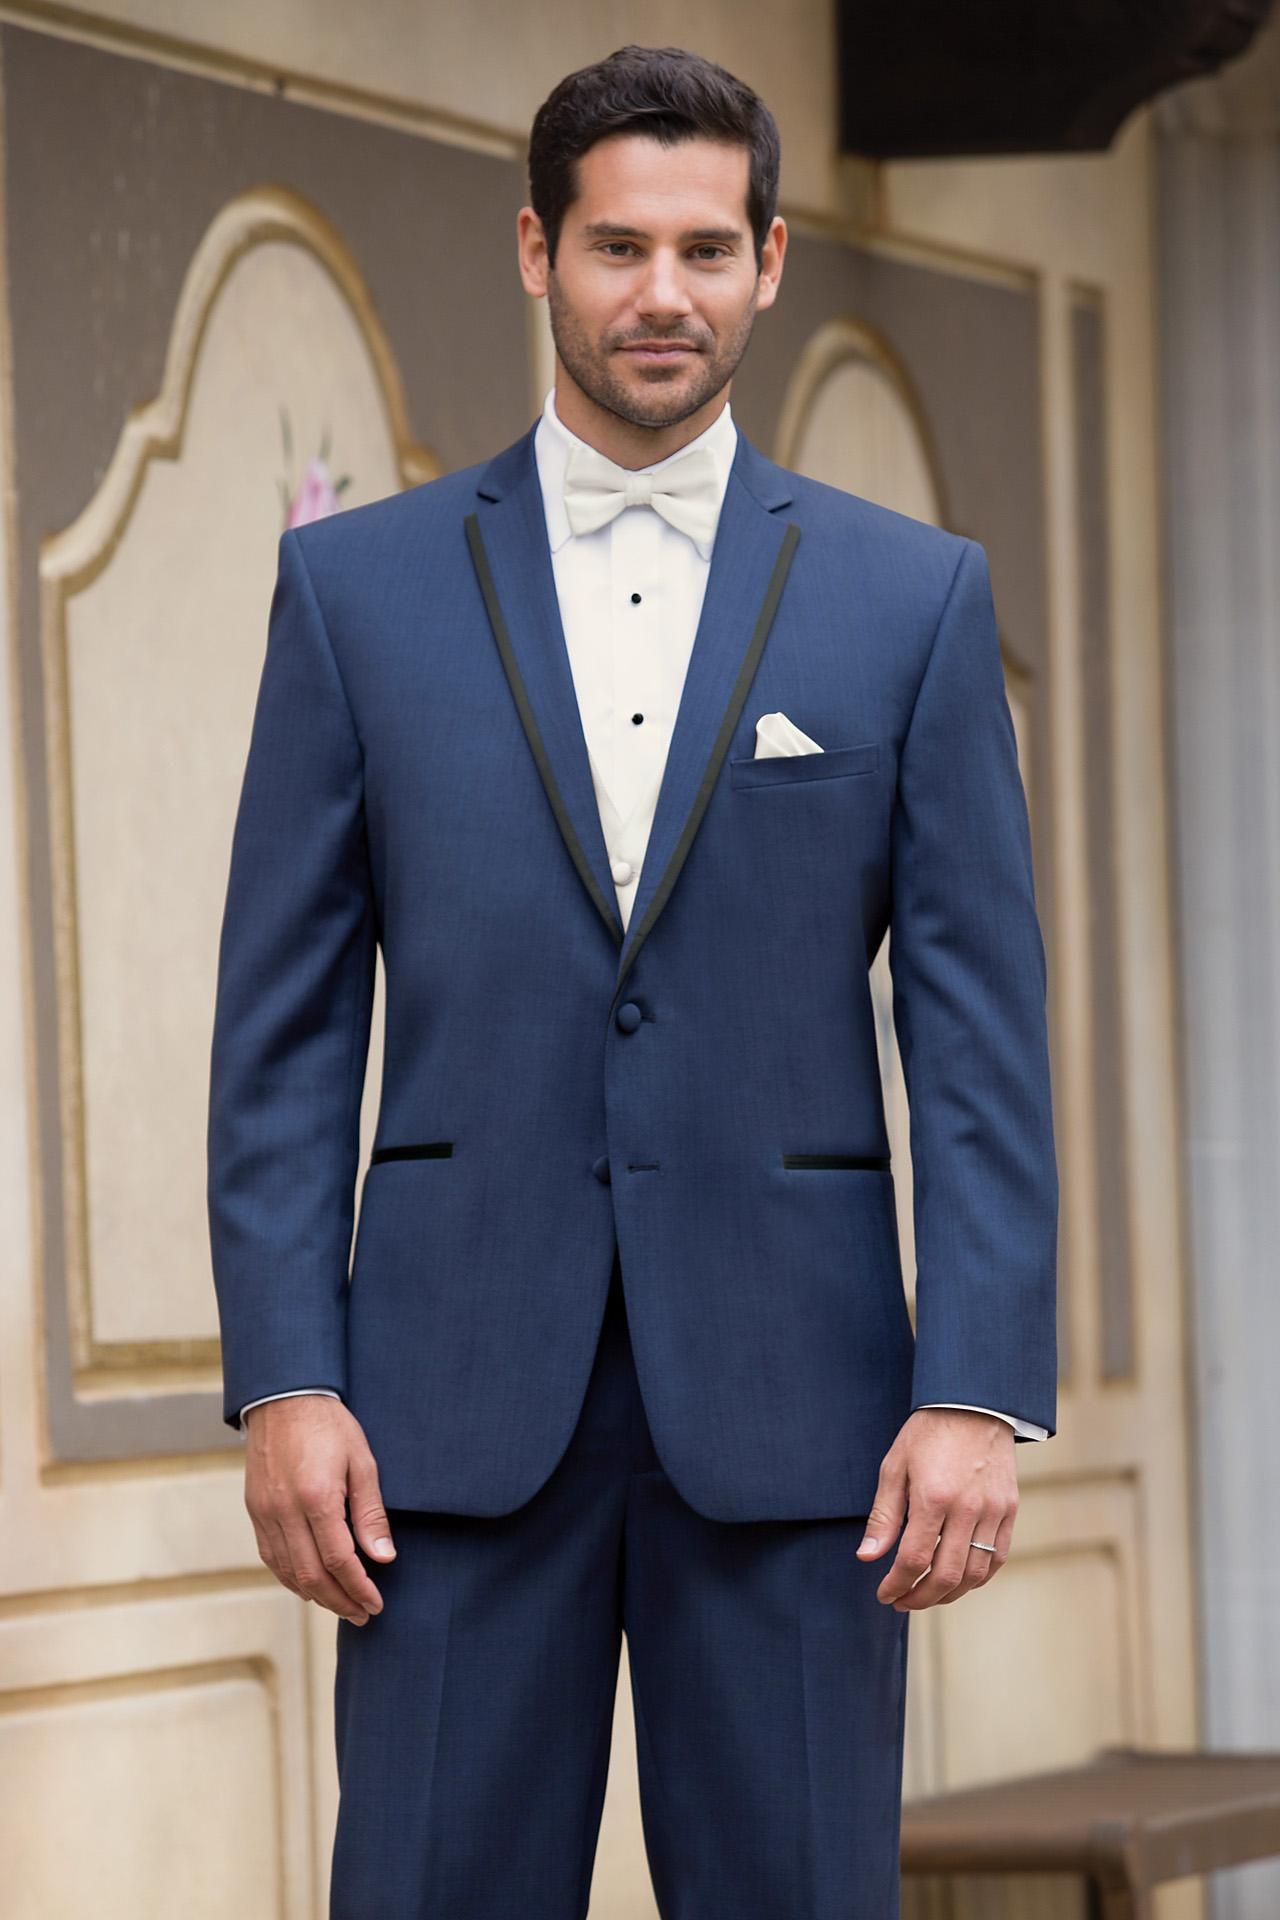 Suit & Tuxedo Rentals Available at Ella Park Bridal | Newburgh, IN ...